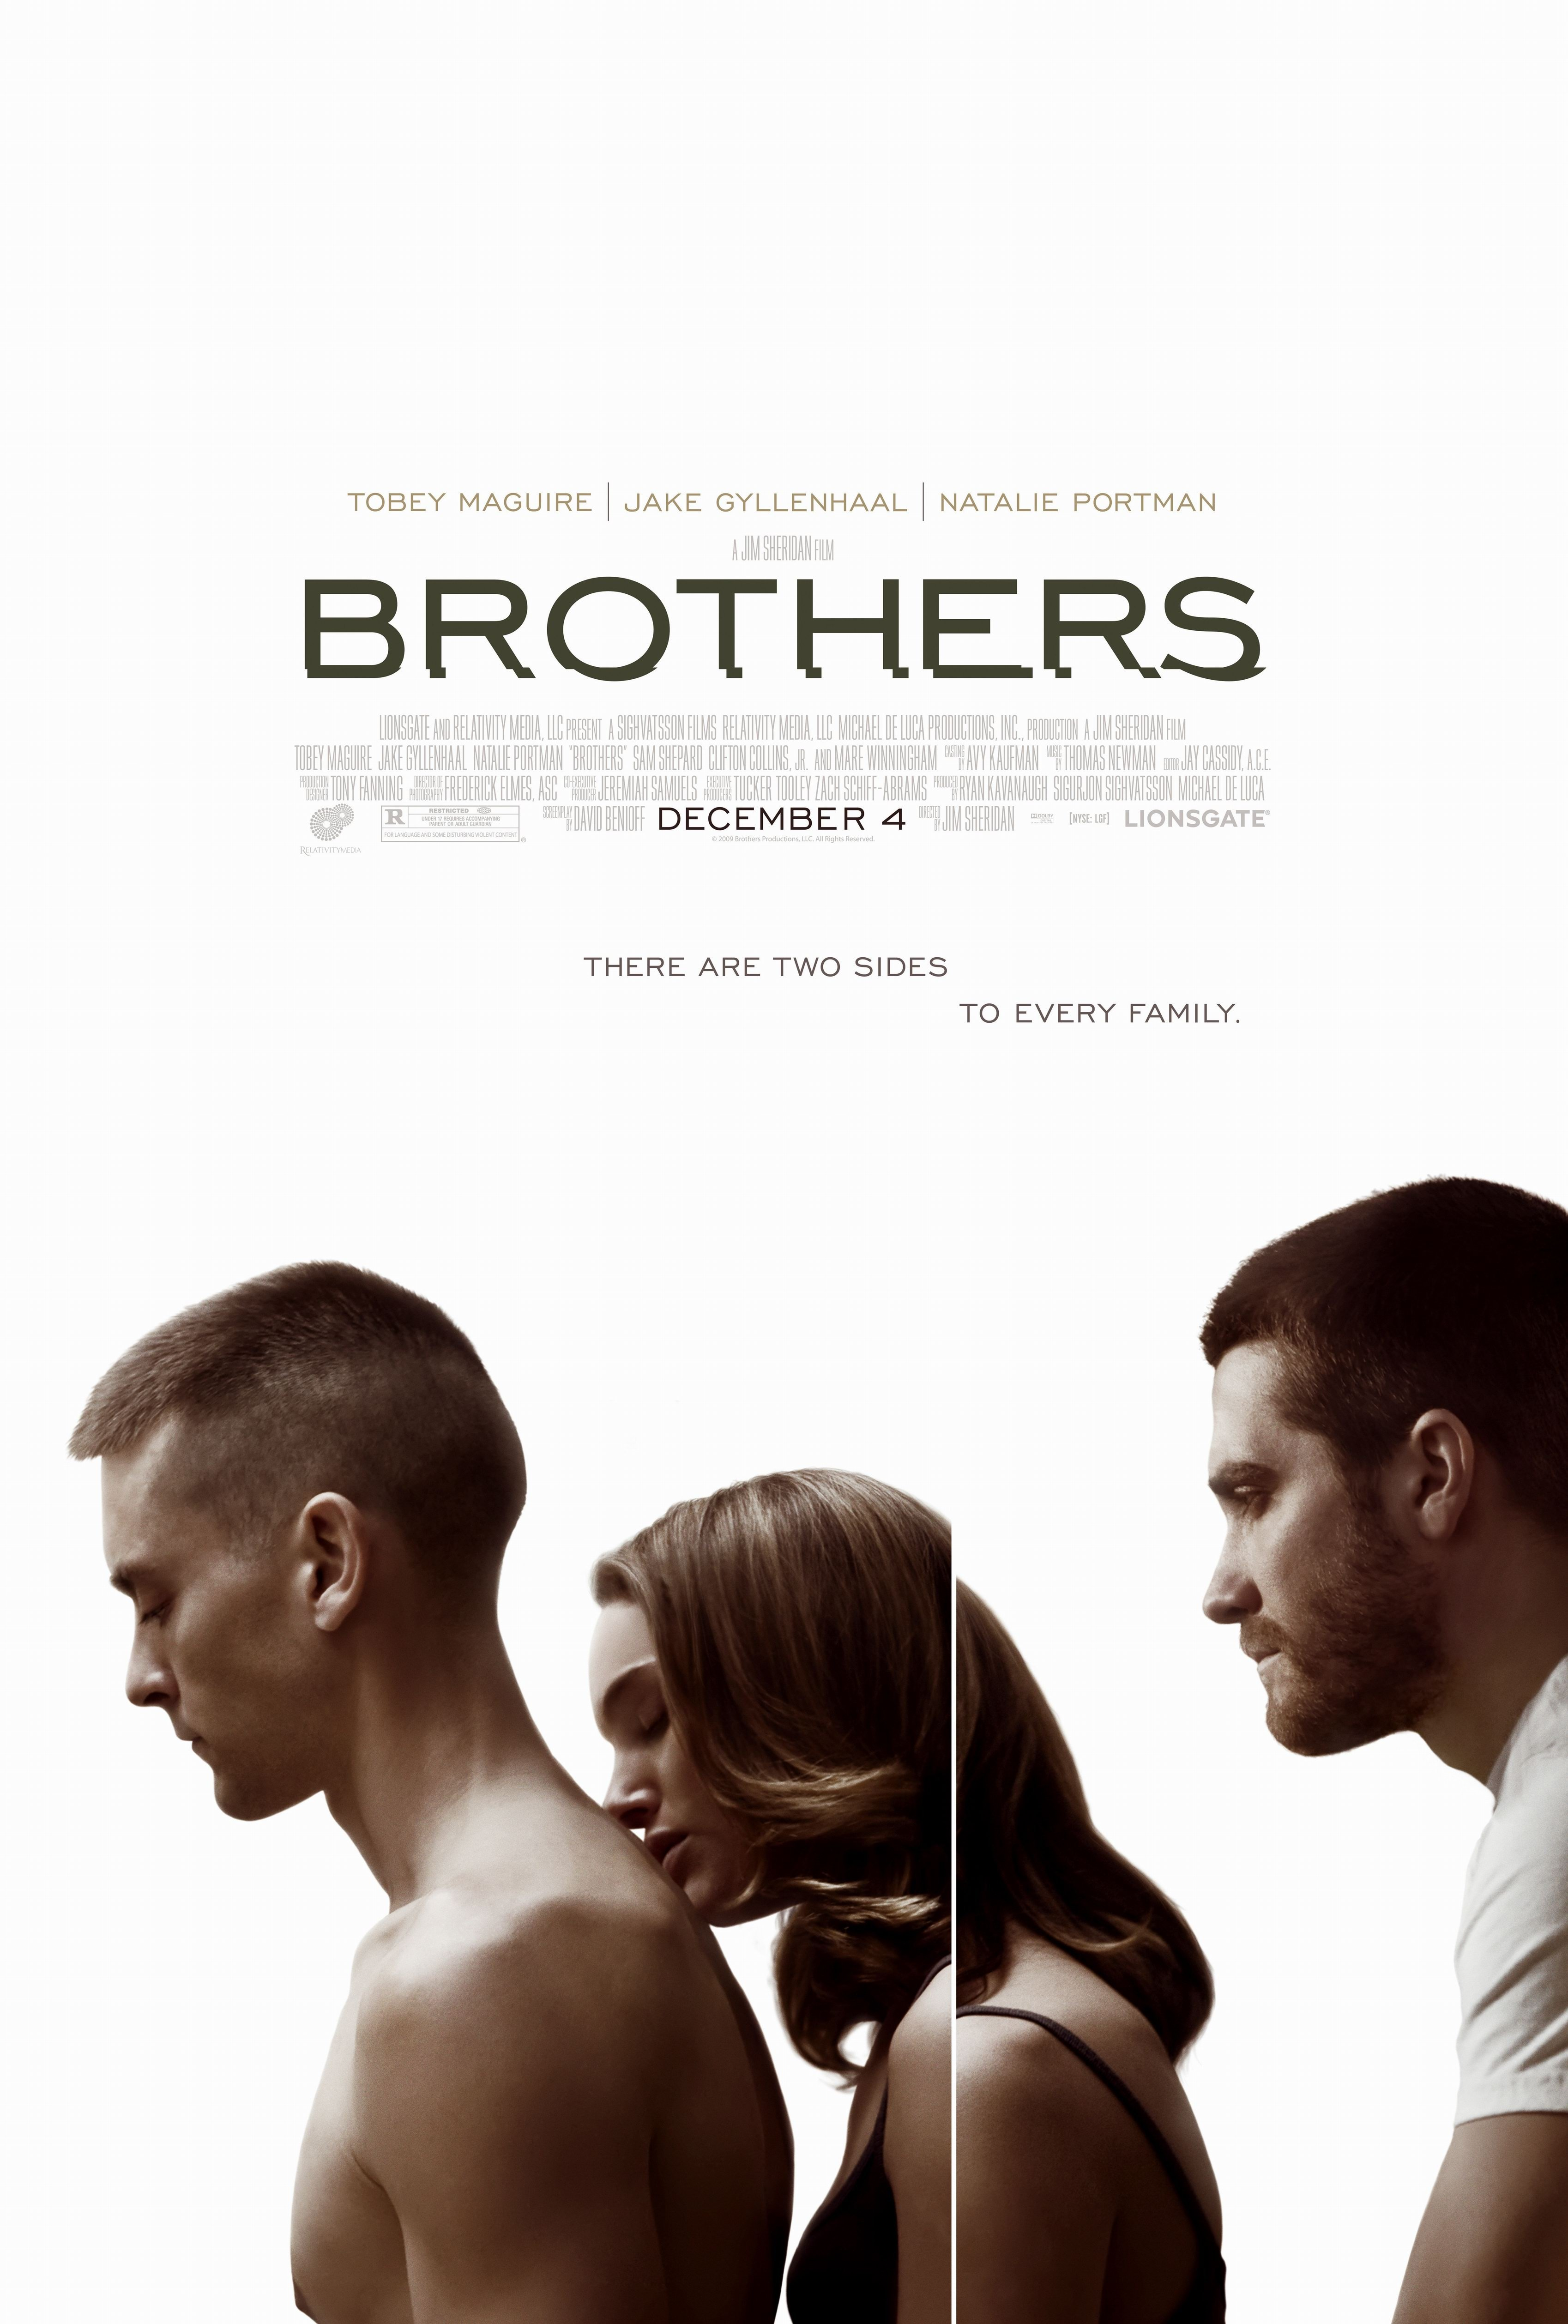 Brothers (2009) poster - FreeMoviePosters.net